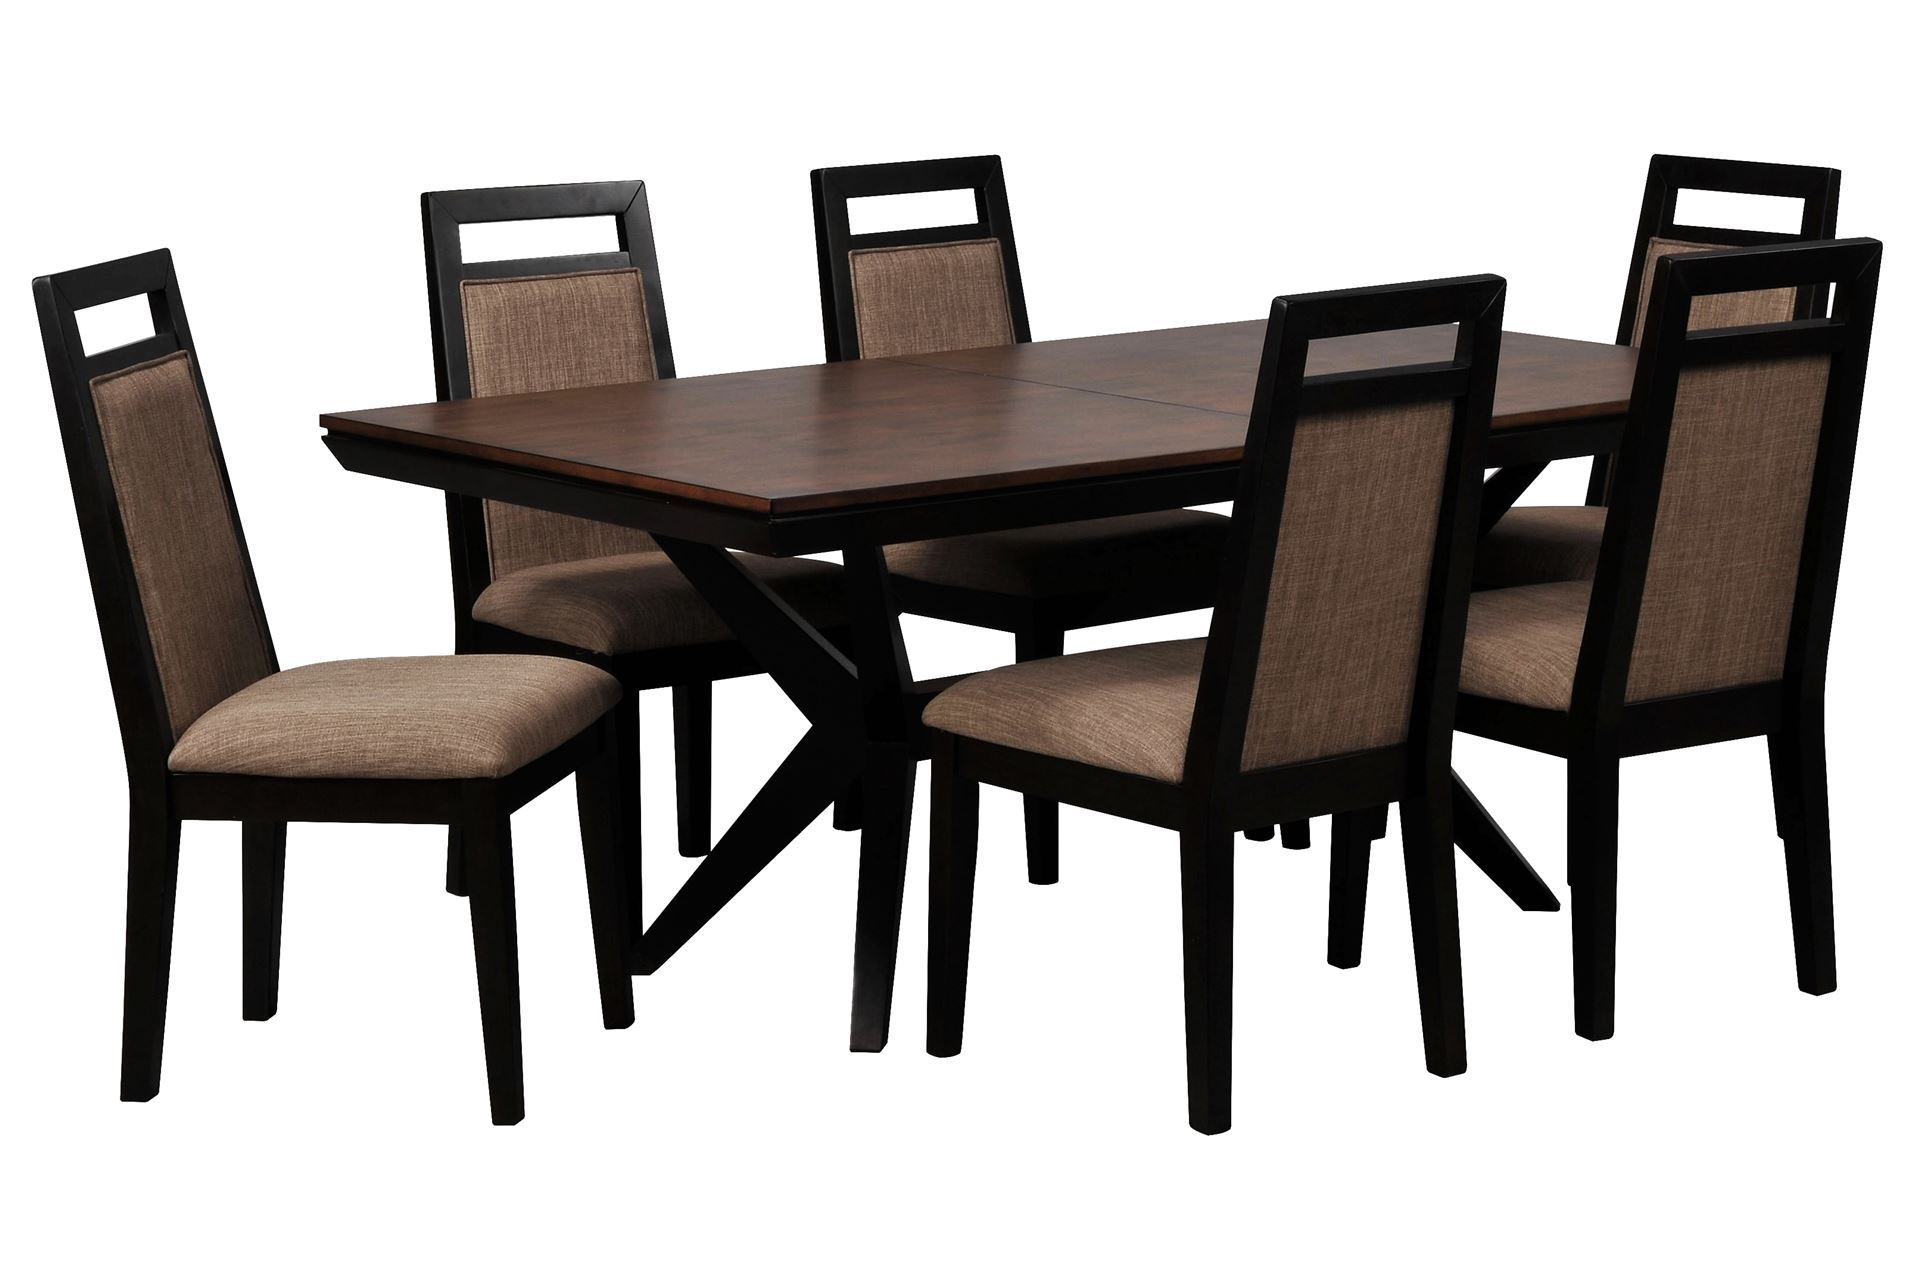 Spencer 7 piece rectangle dining set w upholstered chairs living spaces - Upholstered chairs for small spaces concept ...